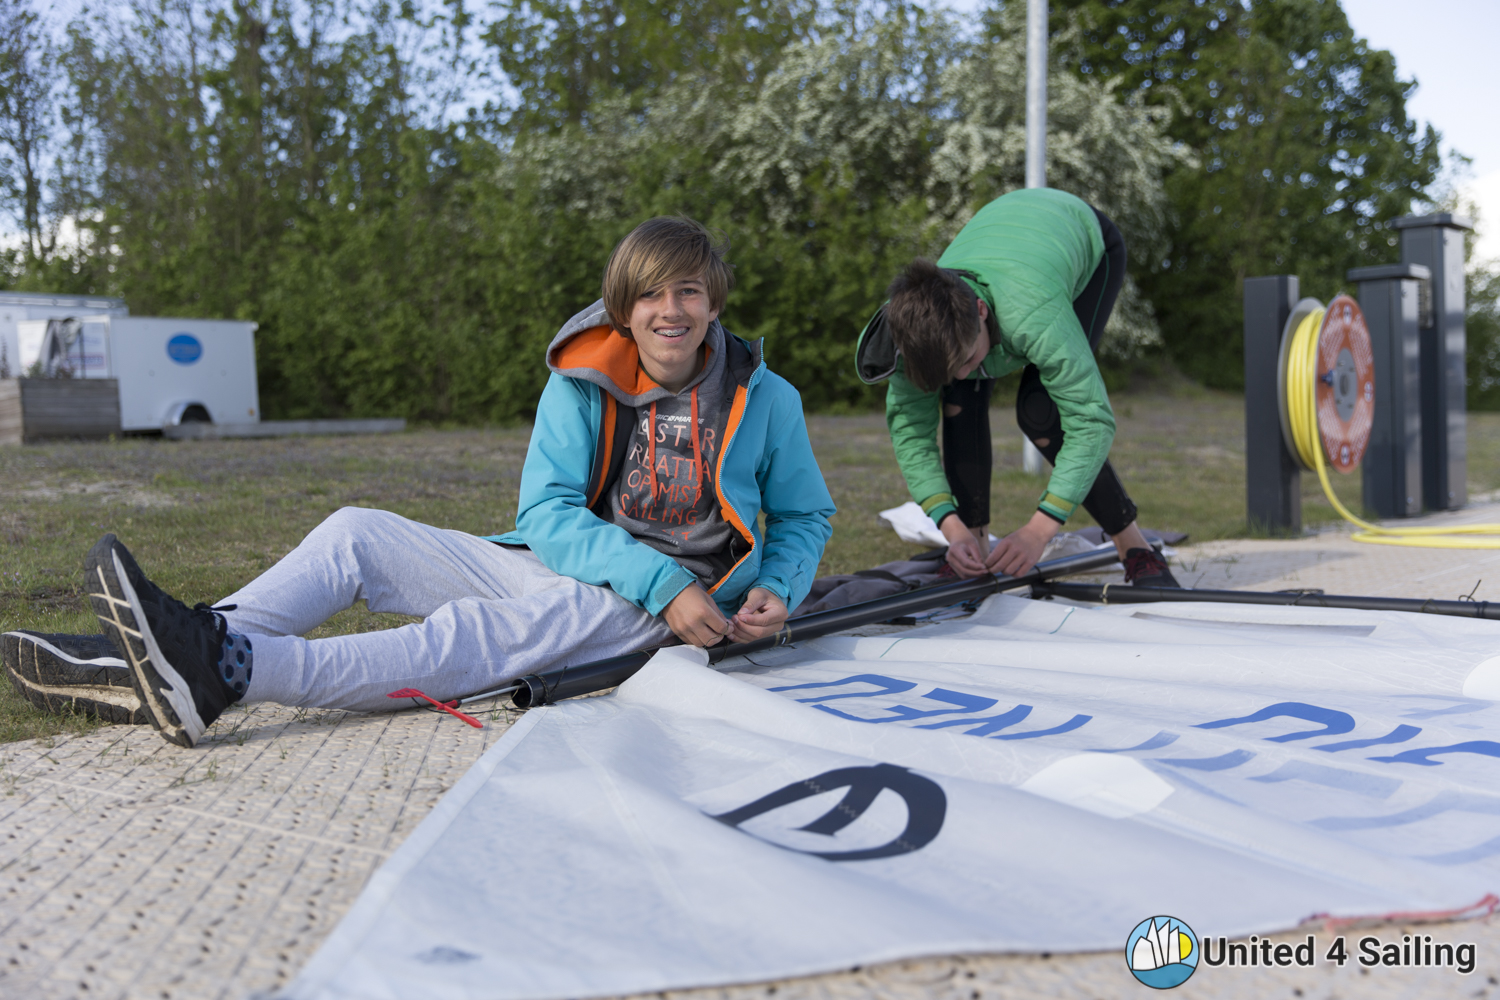 United 4 Sailing - Muiderzand photos